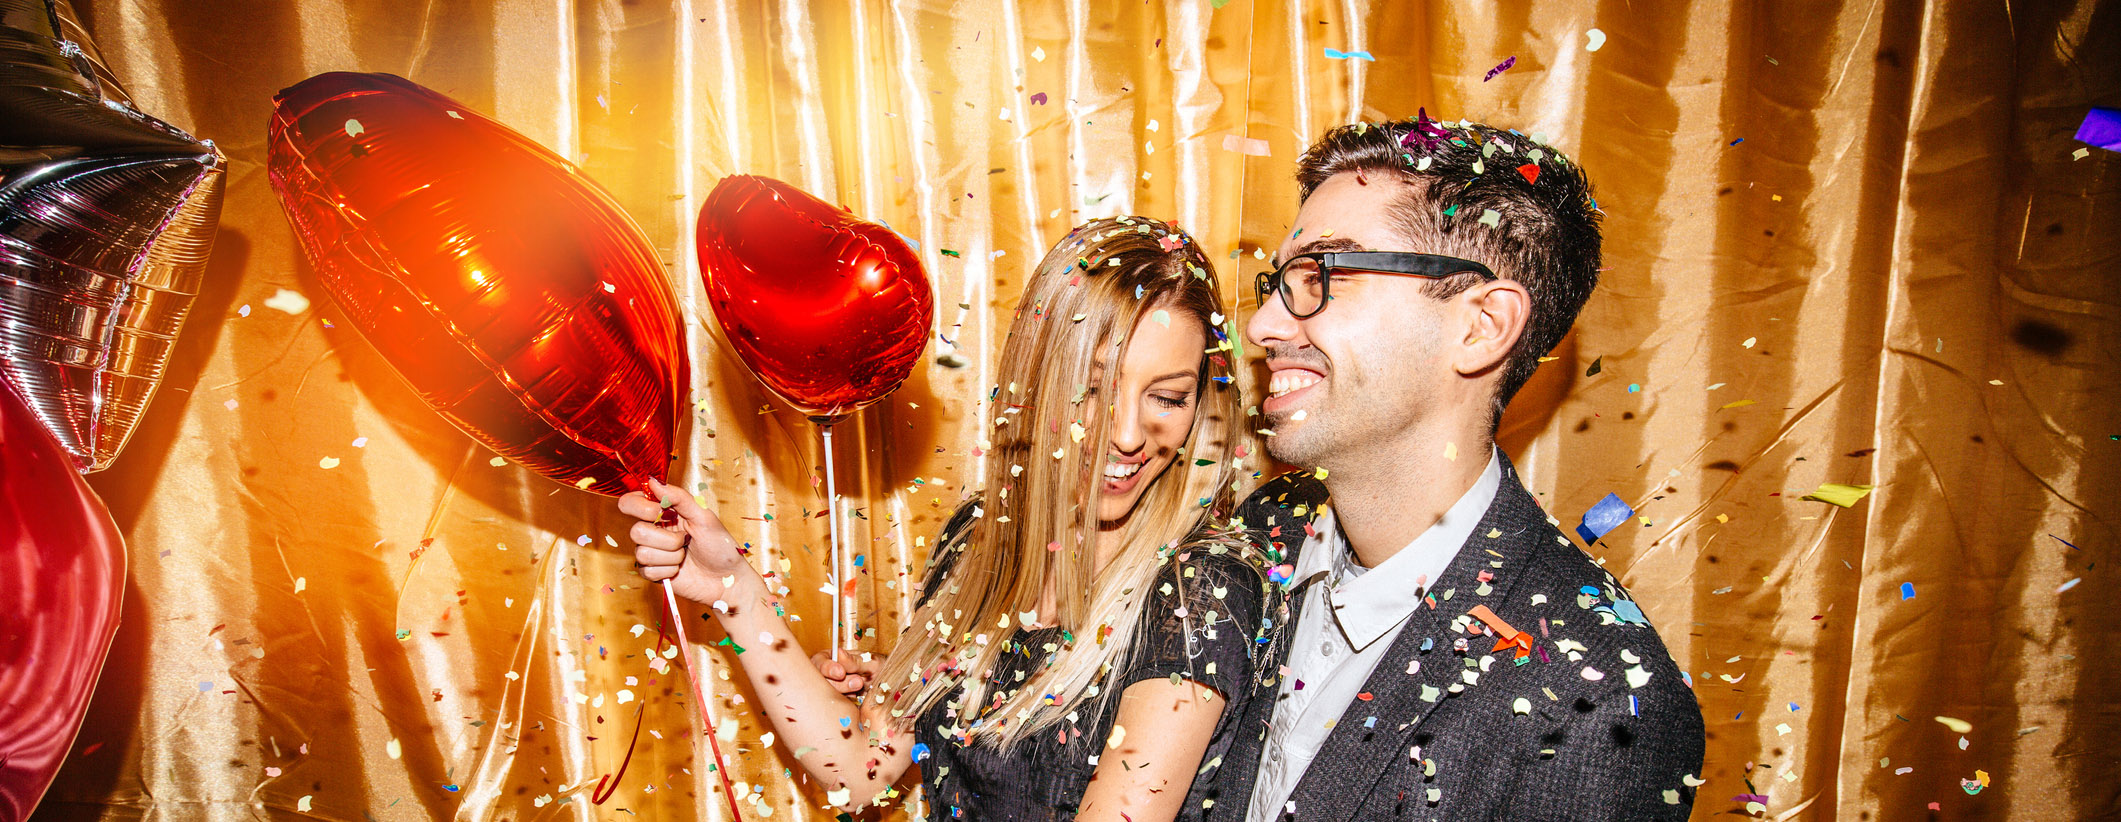 party-GettyImages-503199104